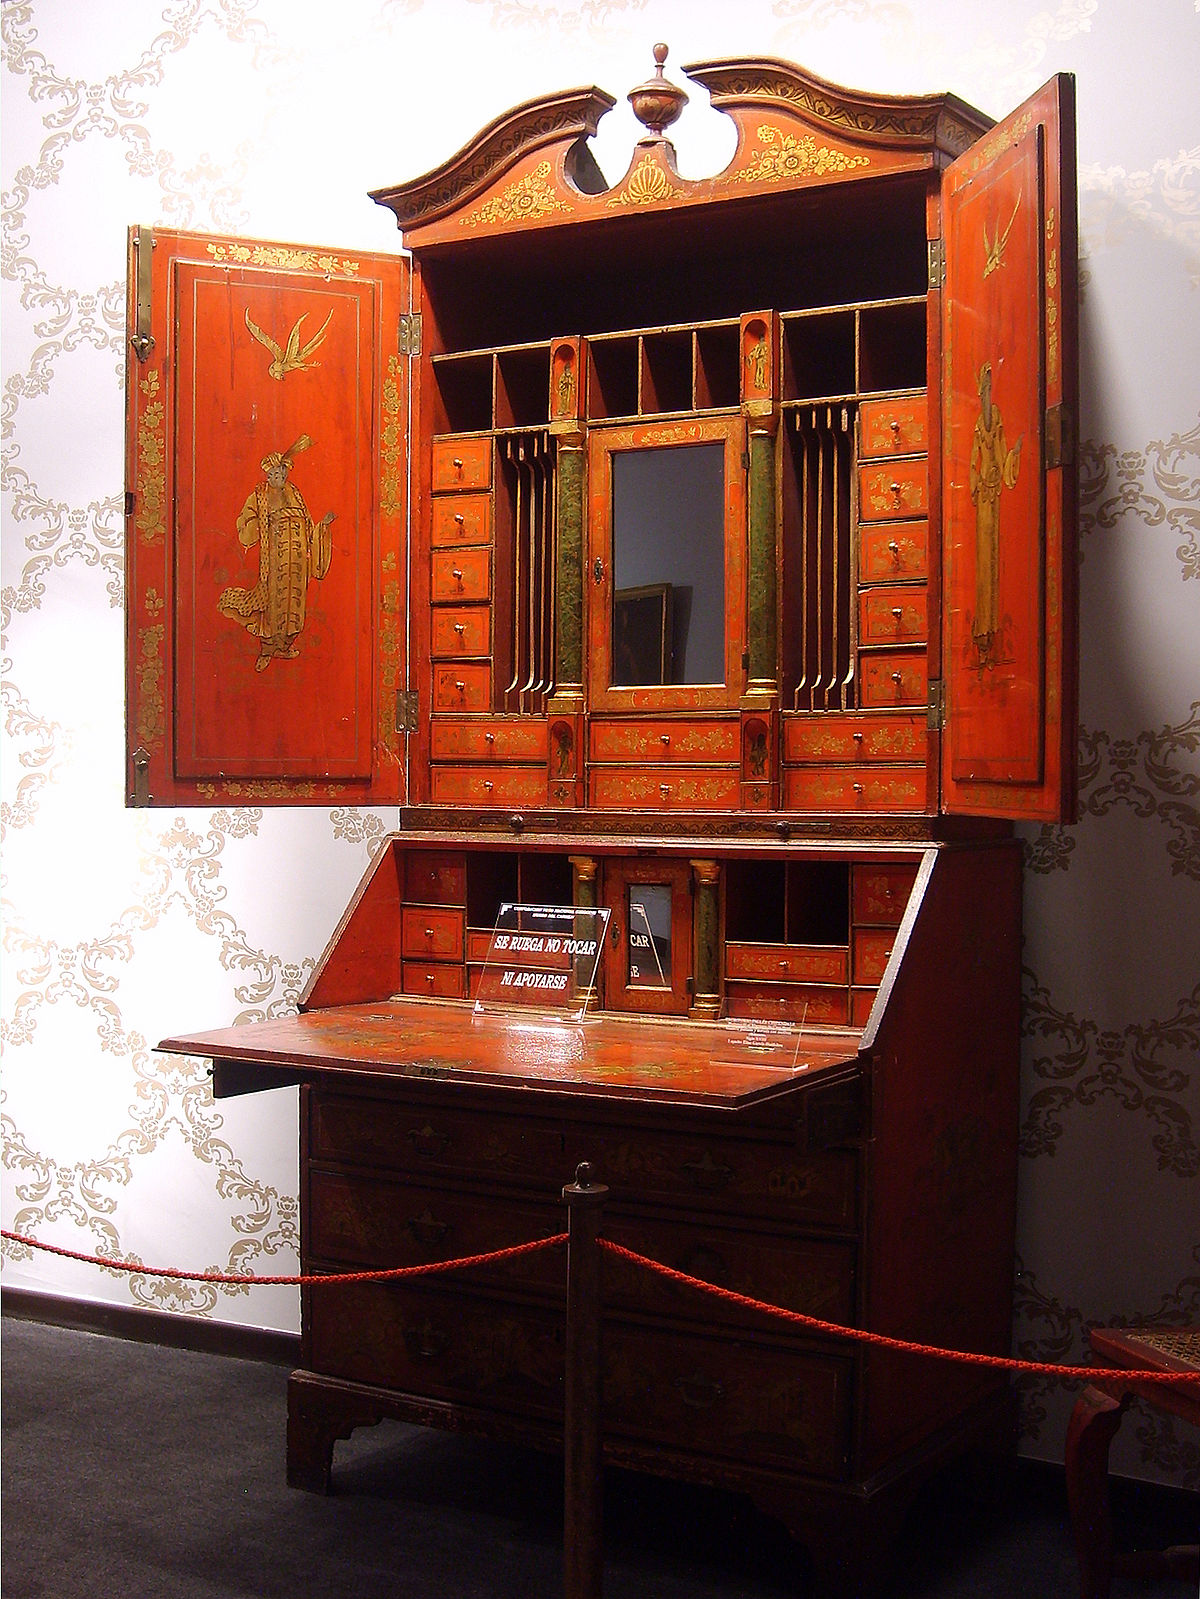 Thomas chippendale wikip dia for Bureau meuble wikipedia